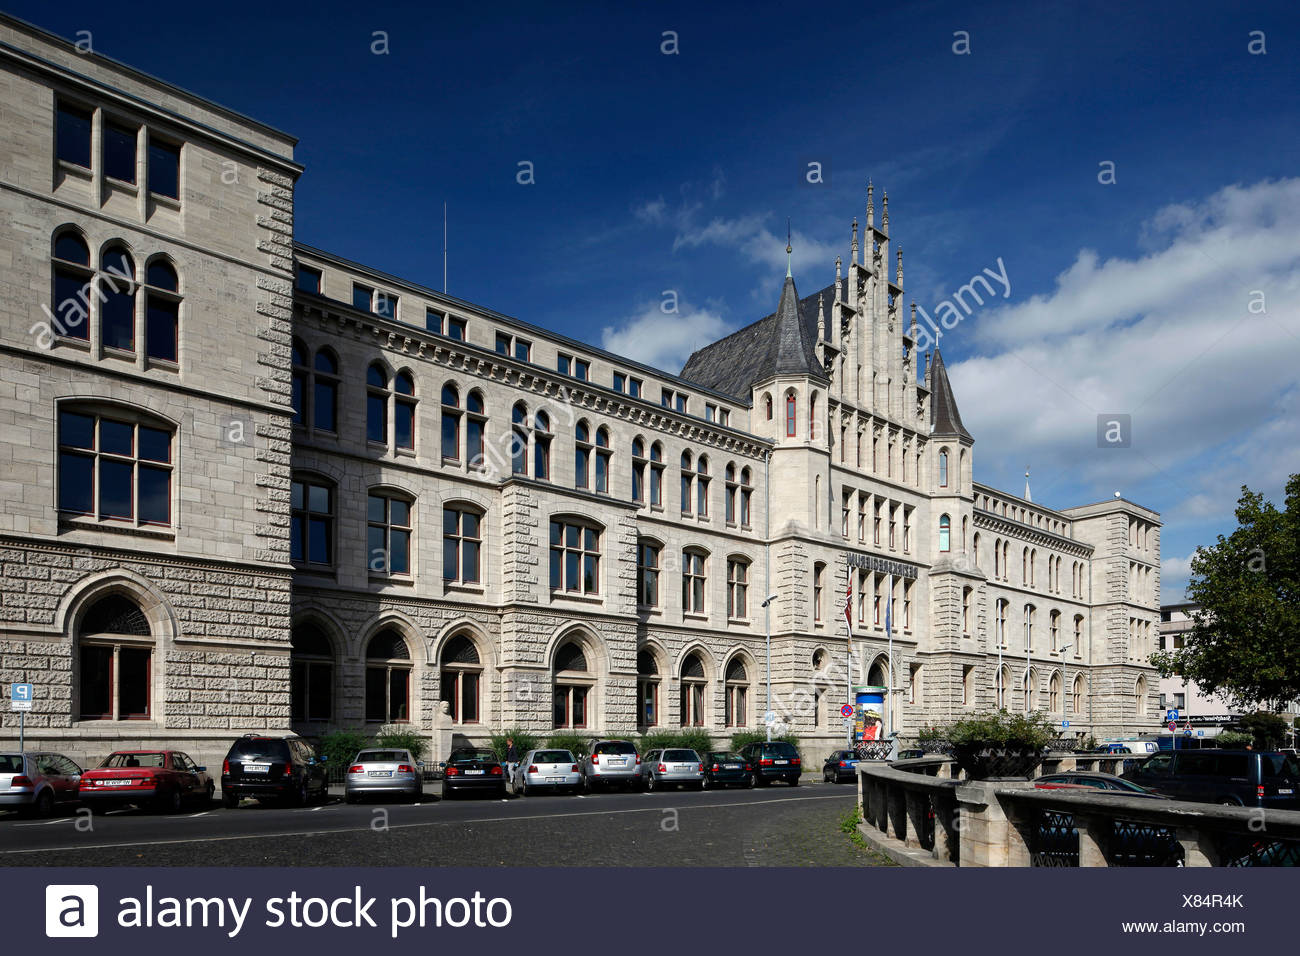 District government of Braunschweig, Braunschweig, Lower Saxony, Germany, Europe - Stock Image